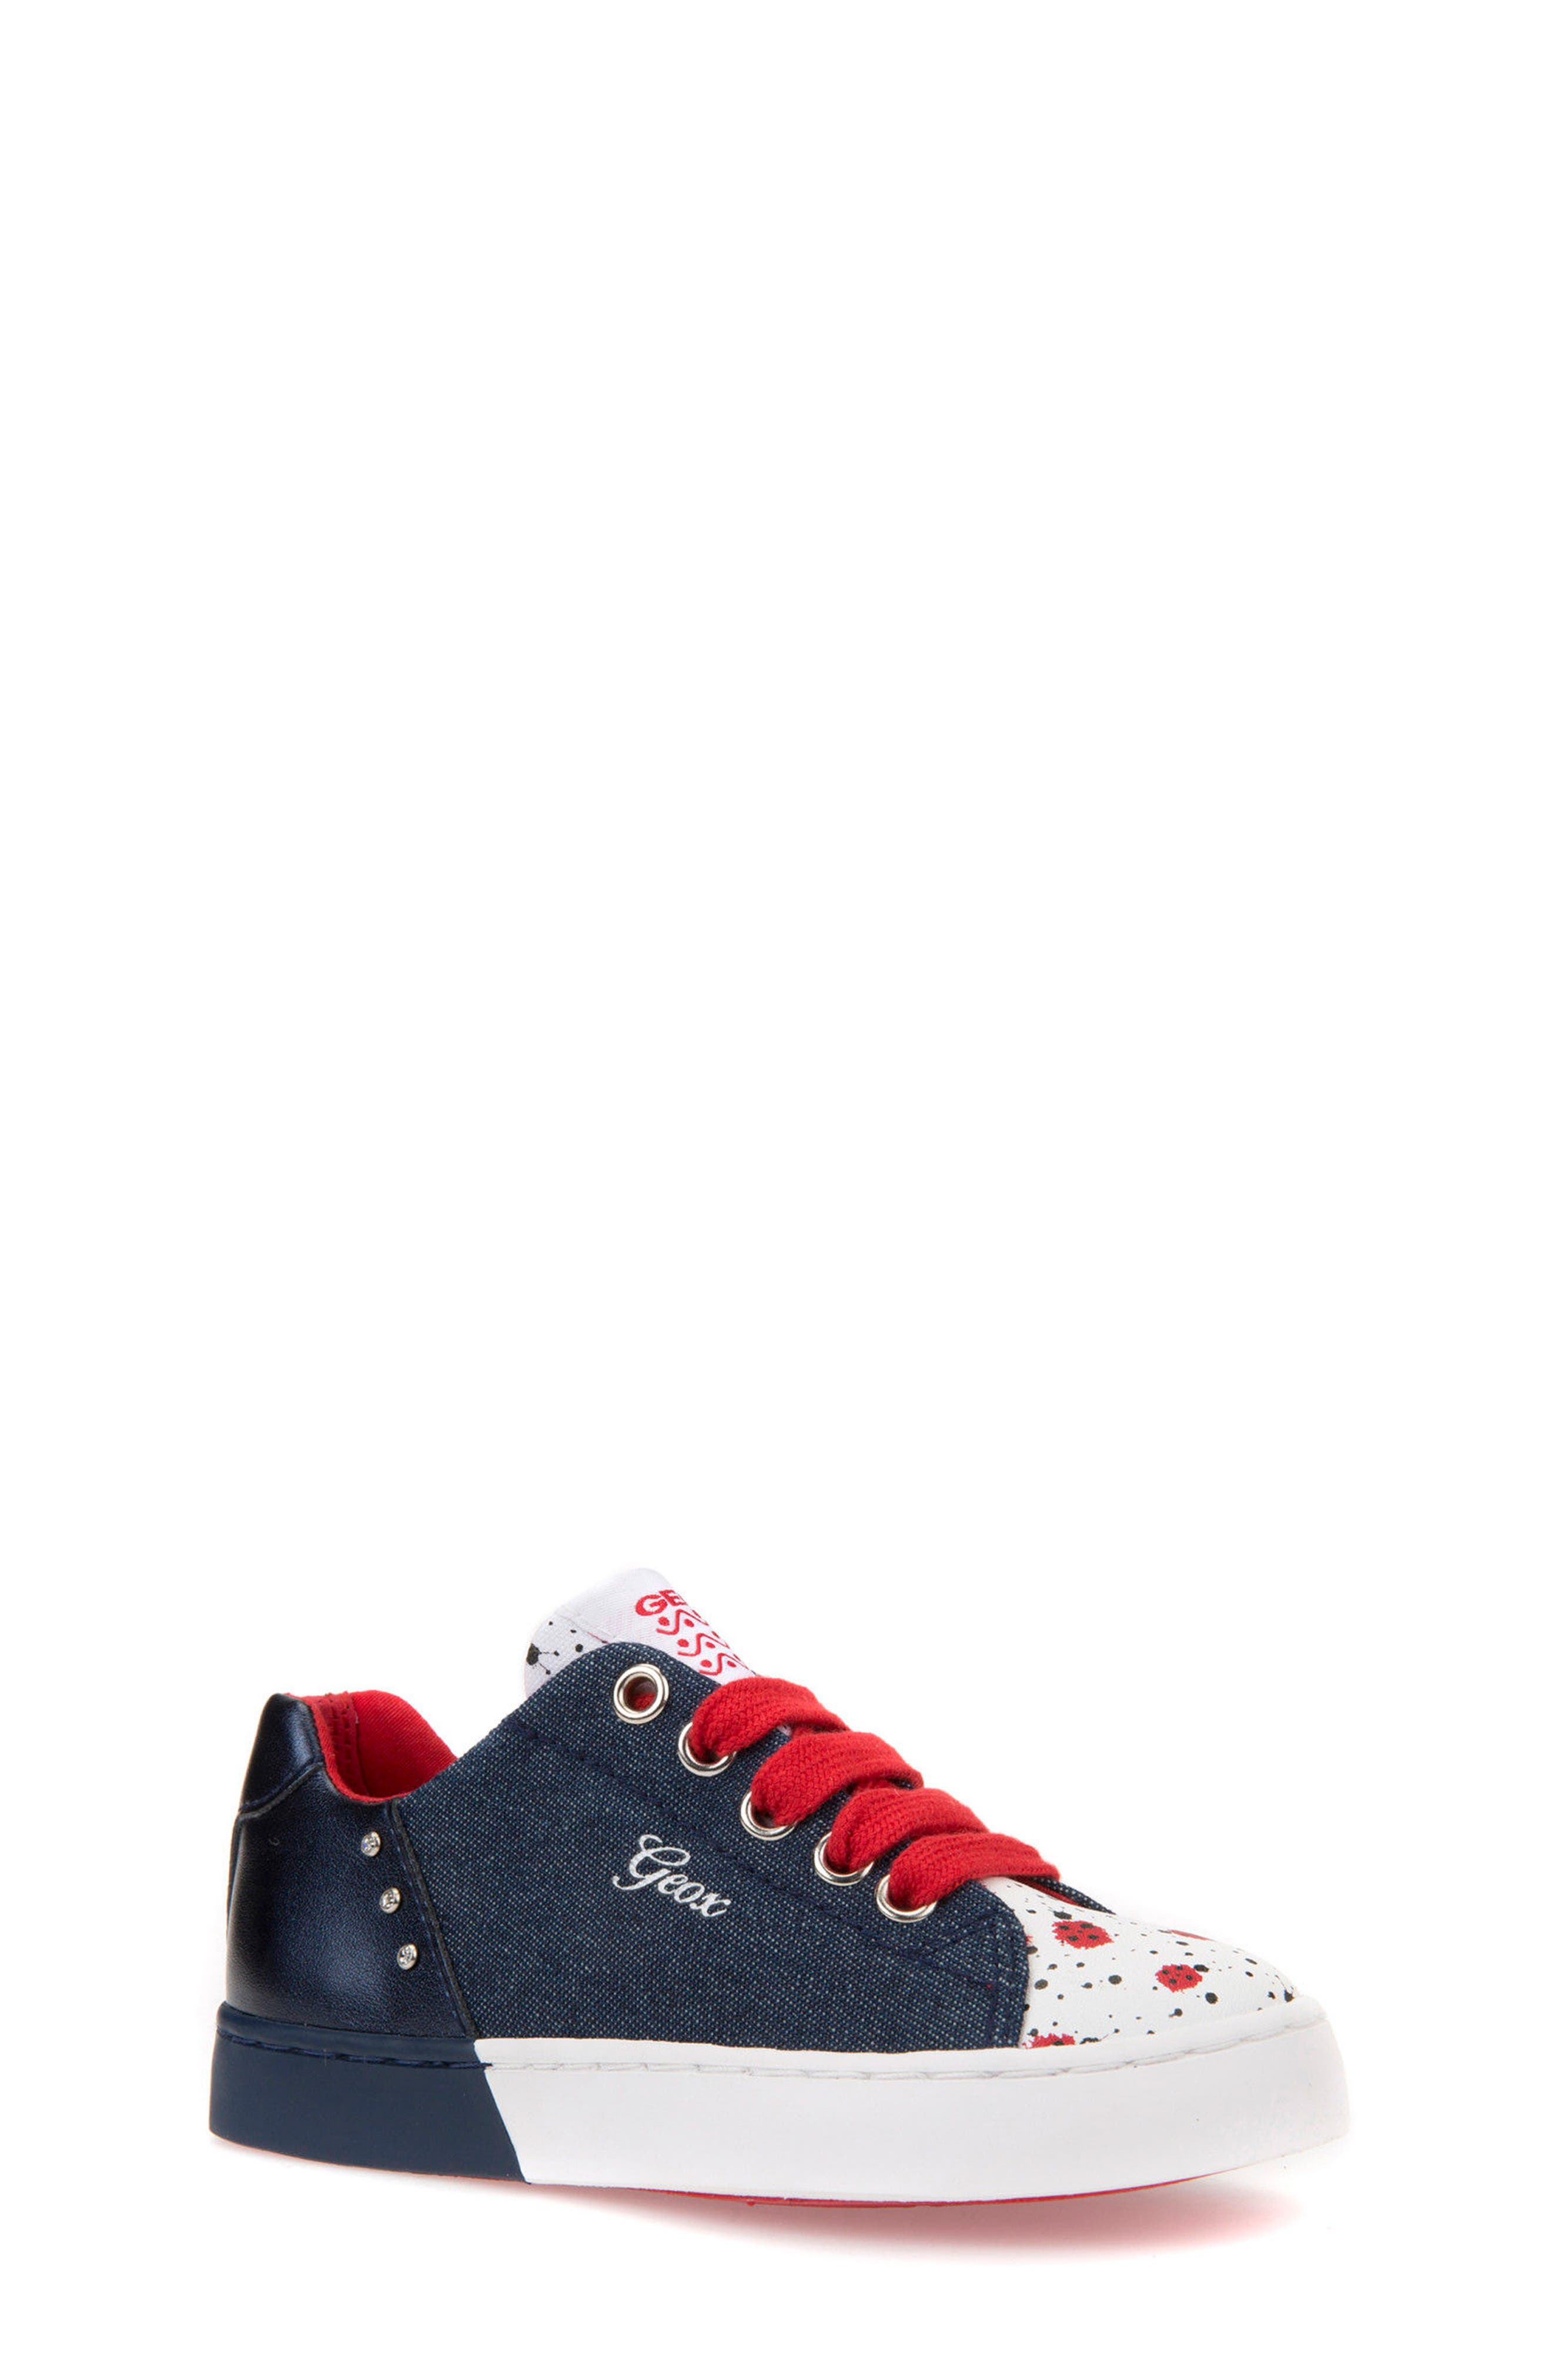 Ciak Low Top Sneaker,                         Main,                         color, JEANS/ NAVY